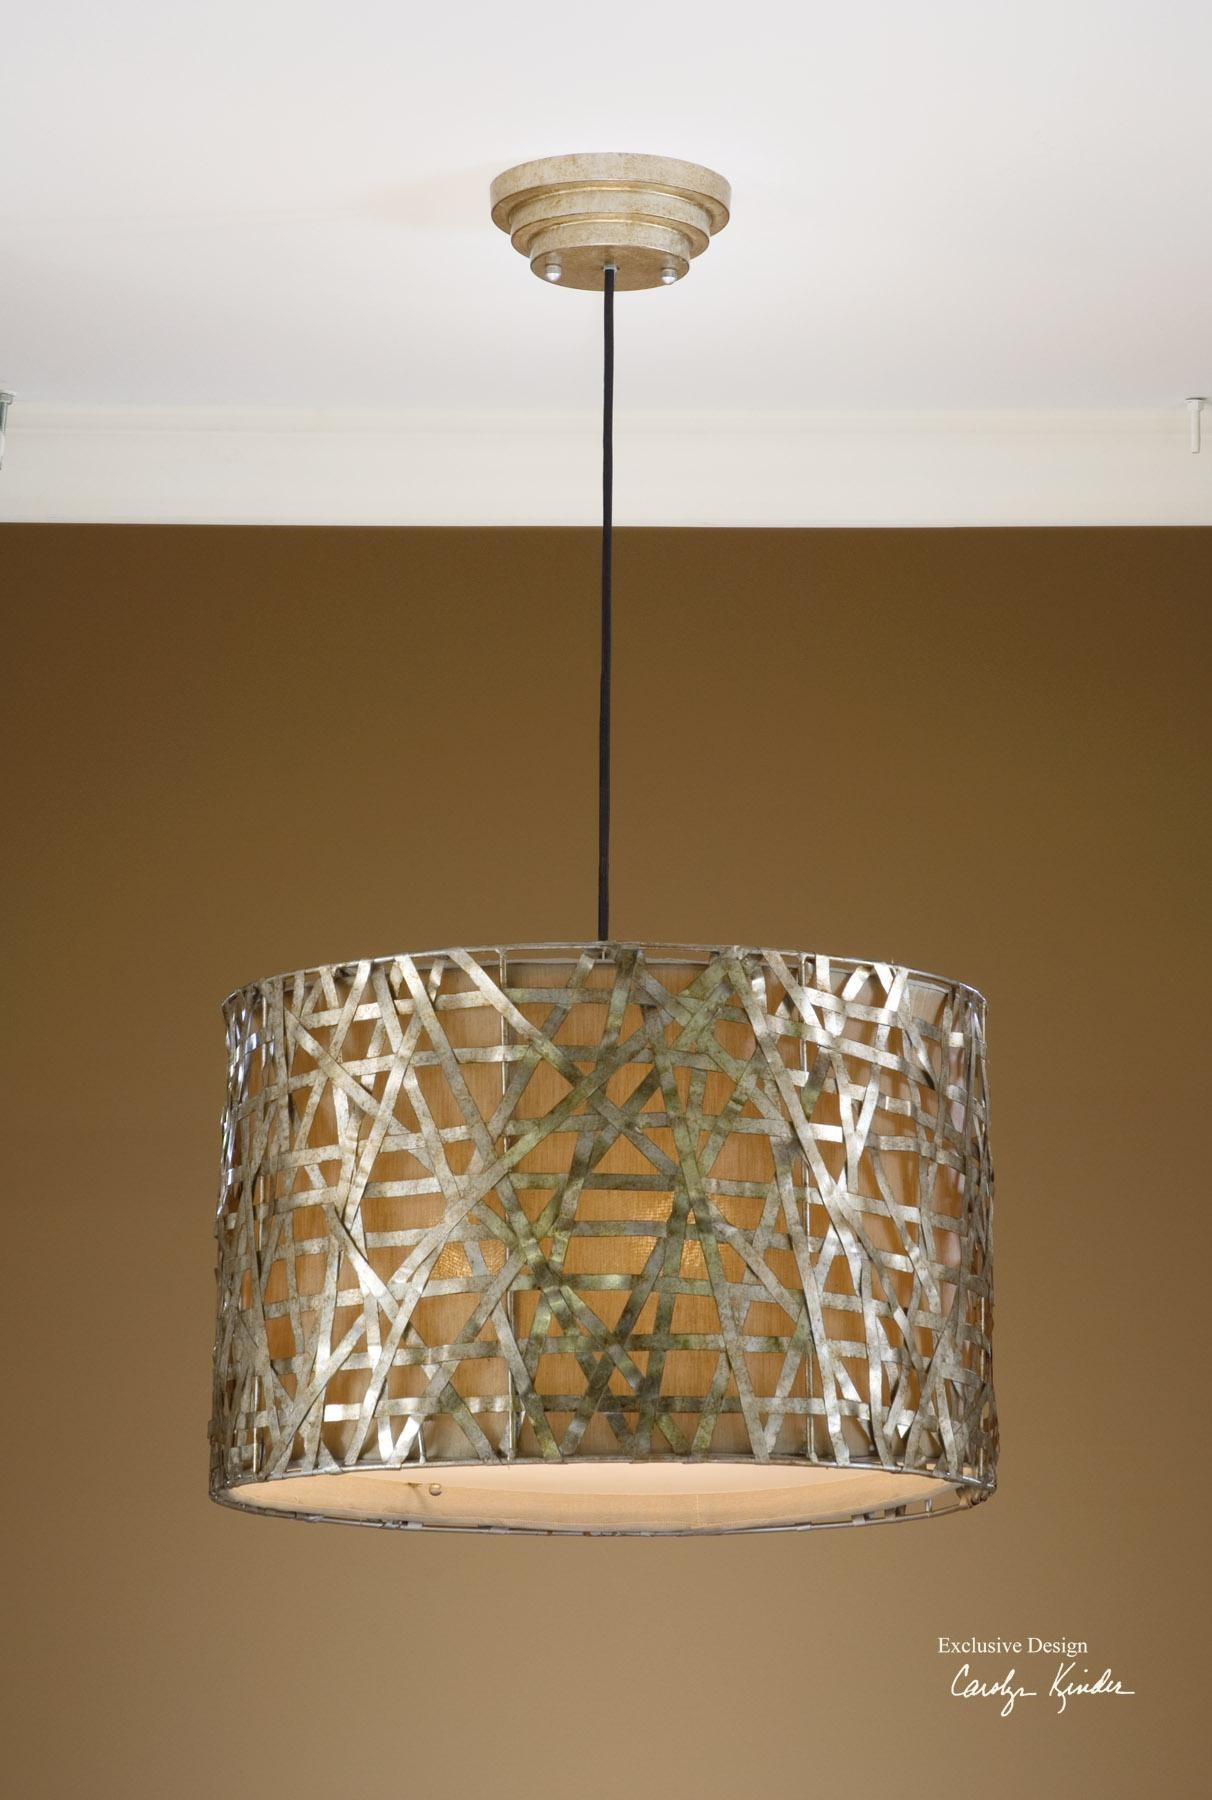 lighting stores tampa area thousands pictures of home furnishing